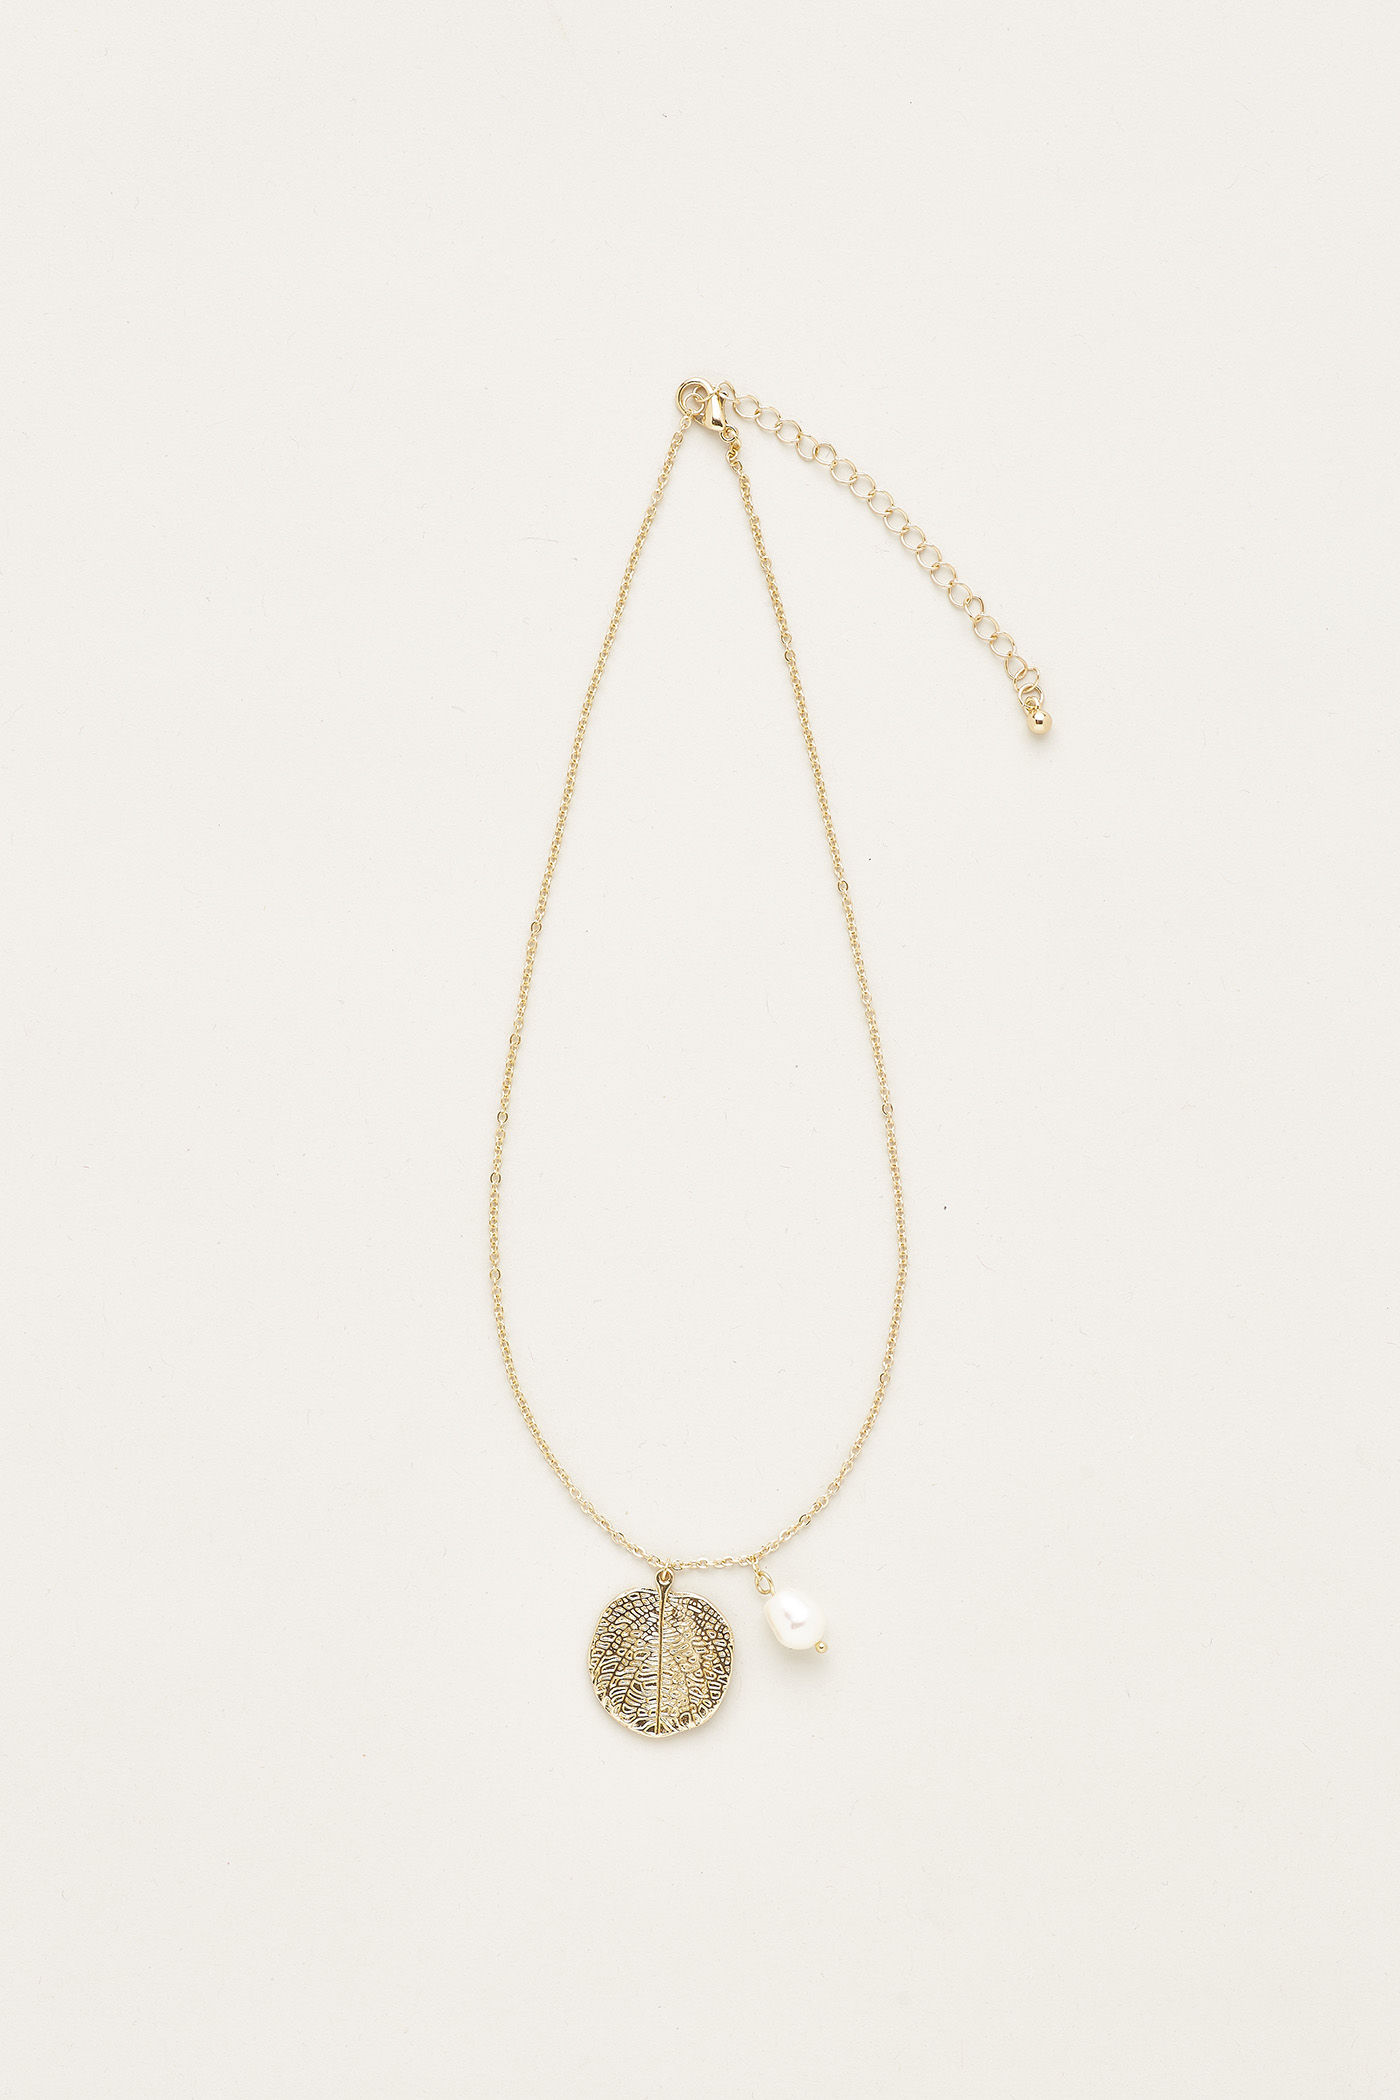 Joselle Pearl Foilage Necklace